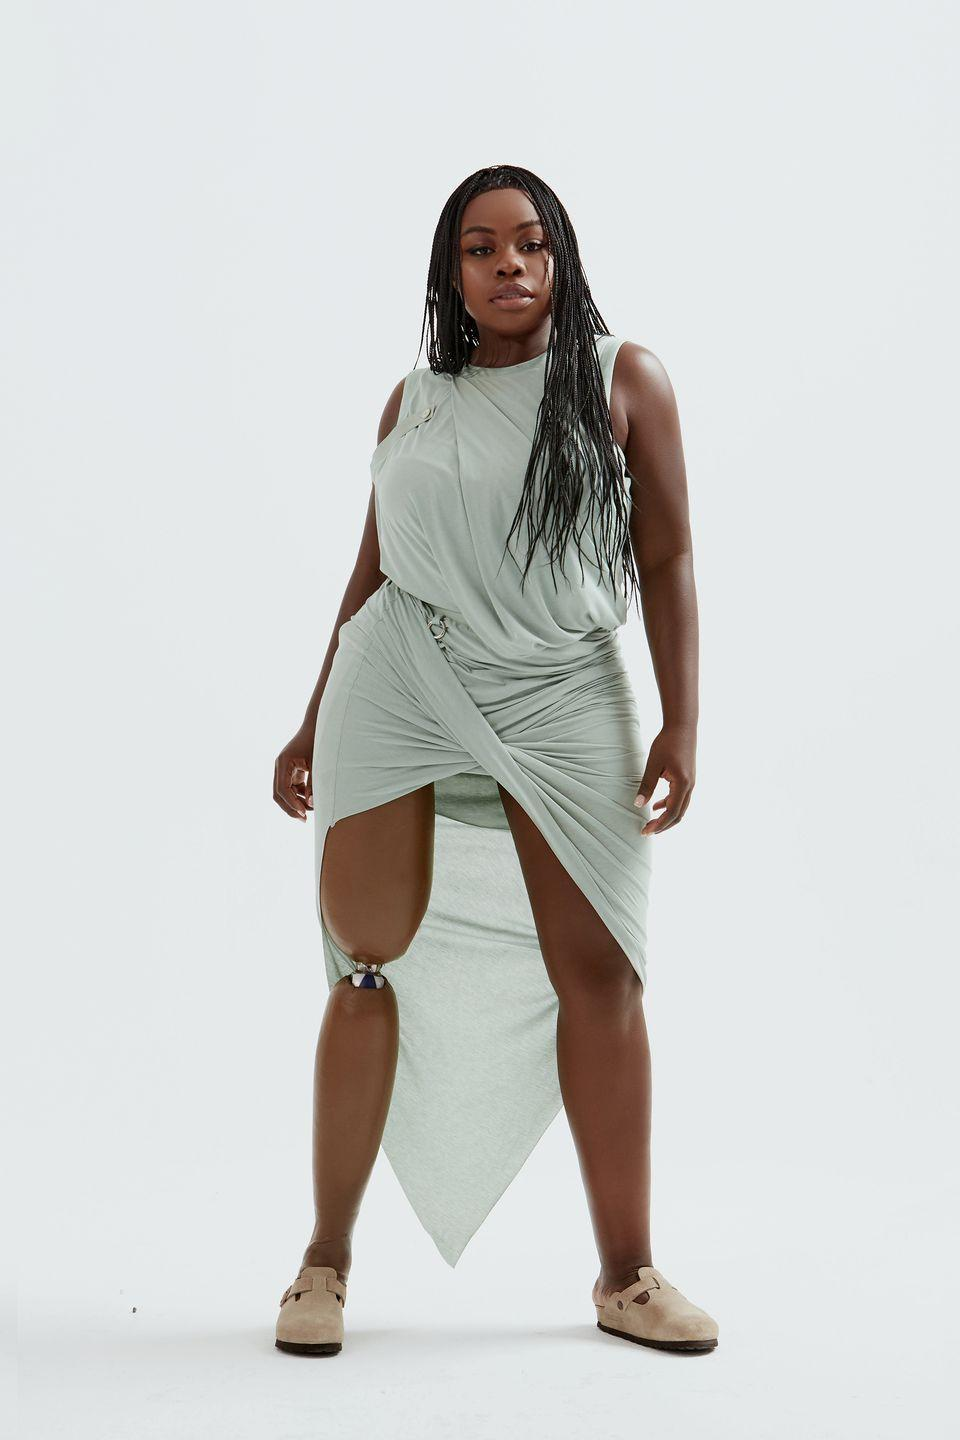 """<p>Private Policy is a label unafraid to address social issues—Fall 2020 was themed around Big Pharma—but this new collection called """"Searching for Aphrodite"""" felt more immediately personal, albeit no less political. Co-designers Haoran Li and Siying Qu, who created it together while separately self-isolating in New York and Shanghai, respectively, wanted to unpack the idea of beauty and self-love. There was a new ease to the collection thanks to soft Grecian drapes and relaxed tailoring in calming shades of sage and lilac, shown on an inclusive range of modern muses including amputee model and singer Marsha Elle and trans model and activist Dominique Castelano. <em>—Alison S. Cohn</em></p>"""